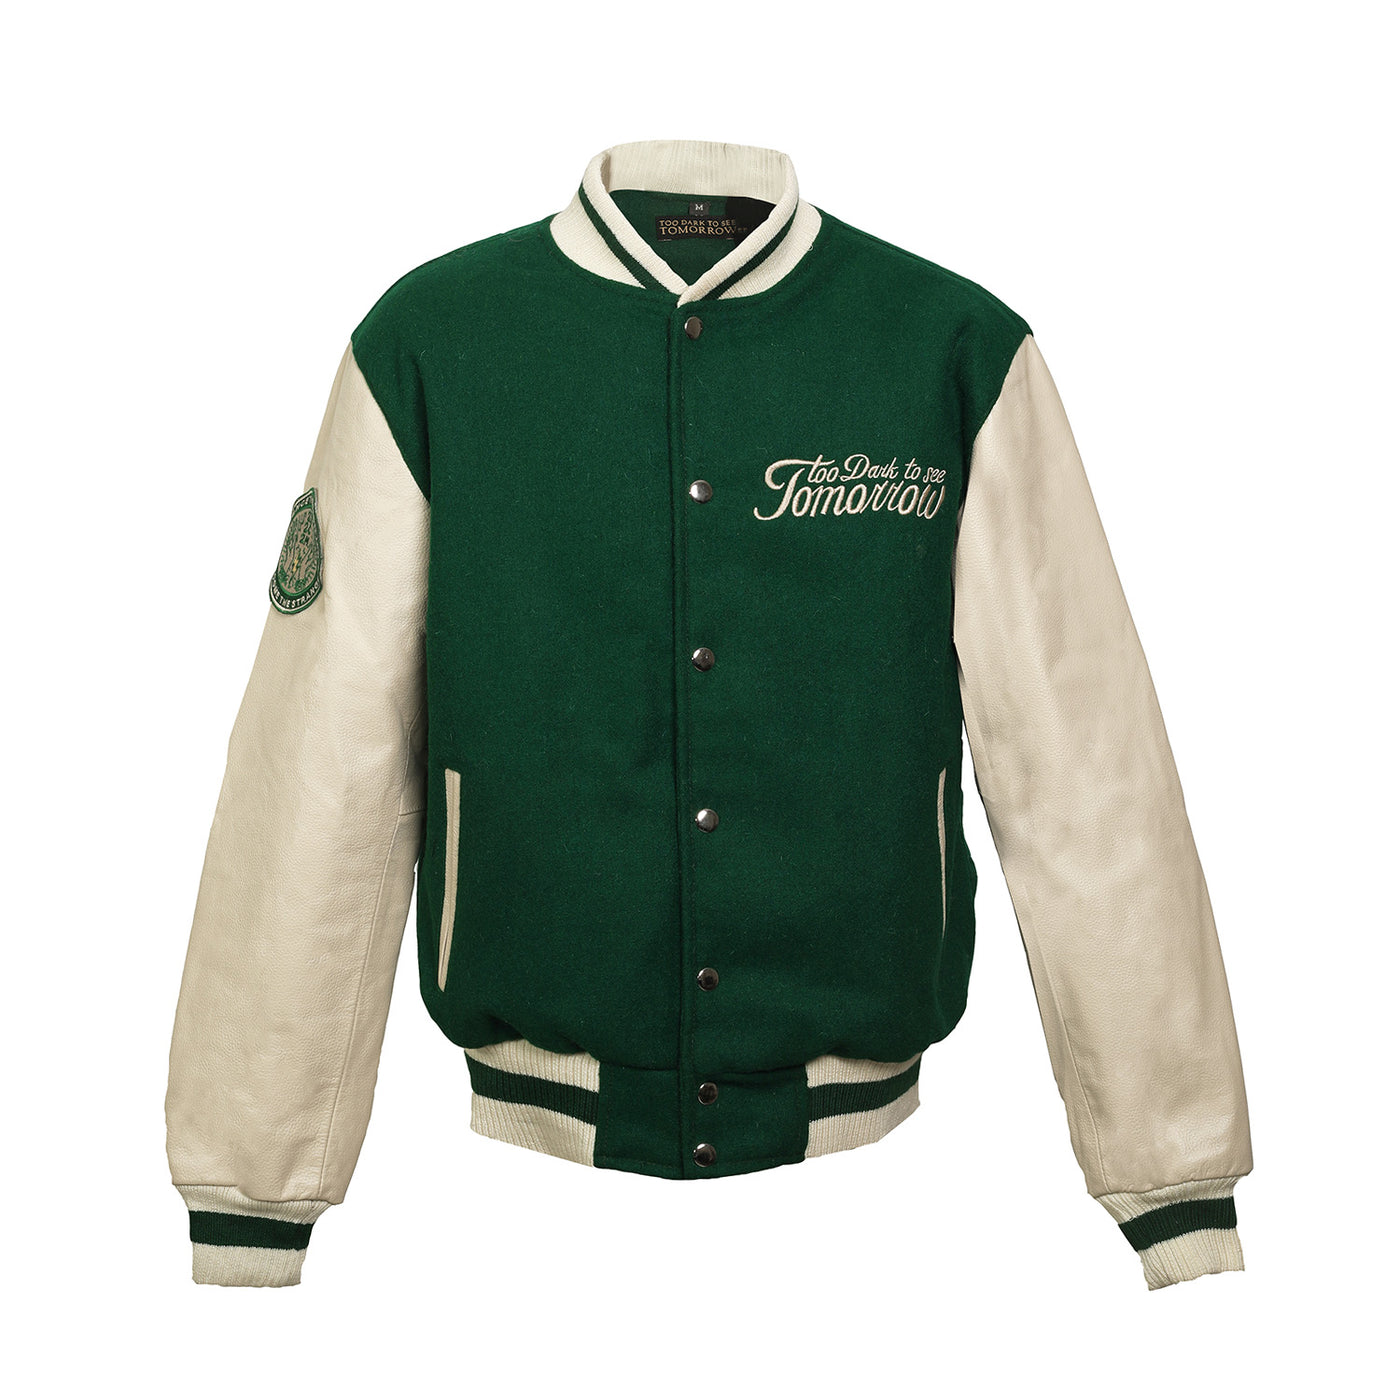 GREEN WOOL & LEATHER VARSITY JACKET